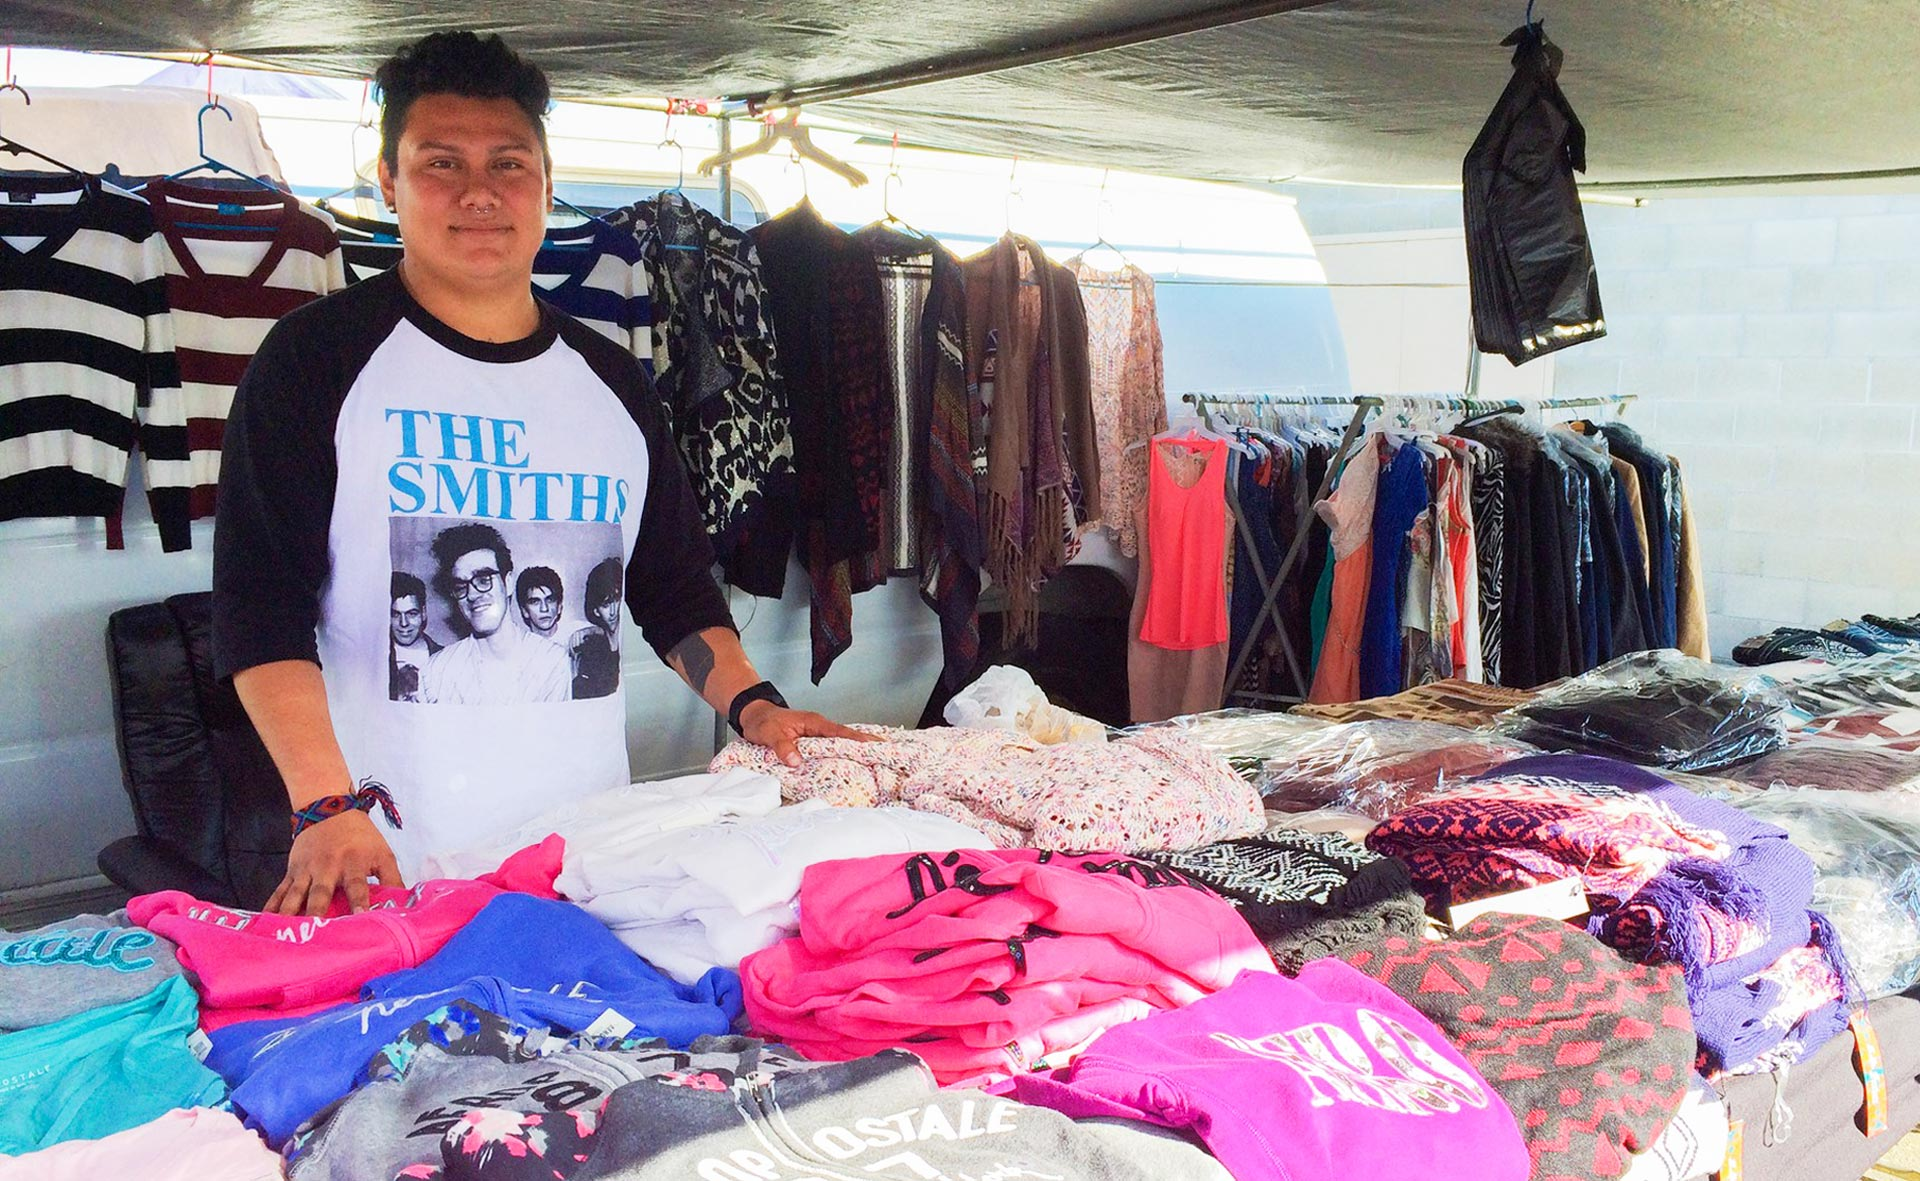 Giovanni Martinez, 27, has been selling clothes at the Cherry Auction for eight years.